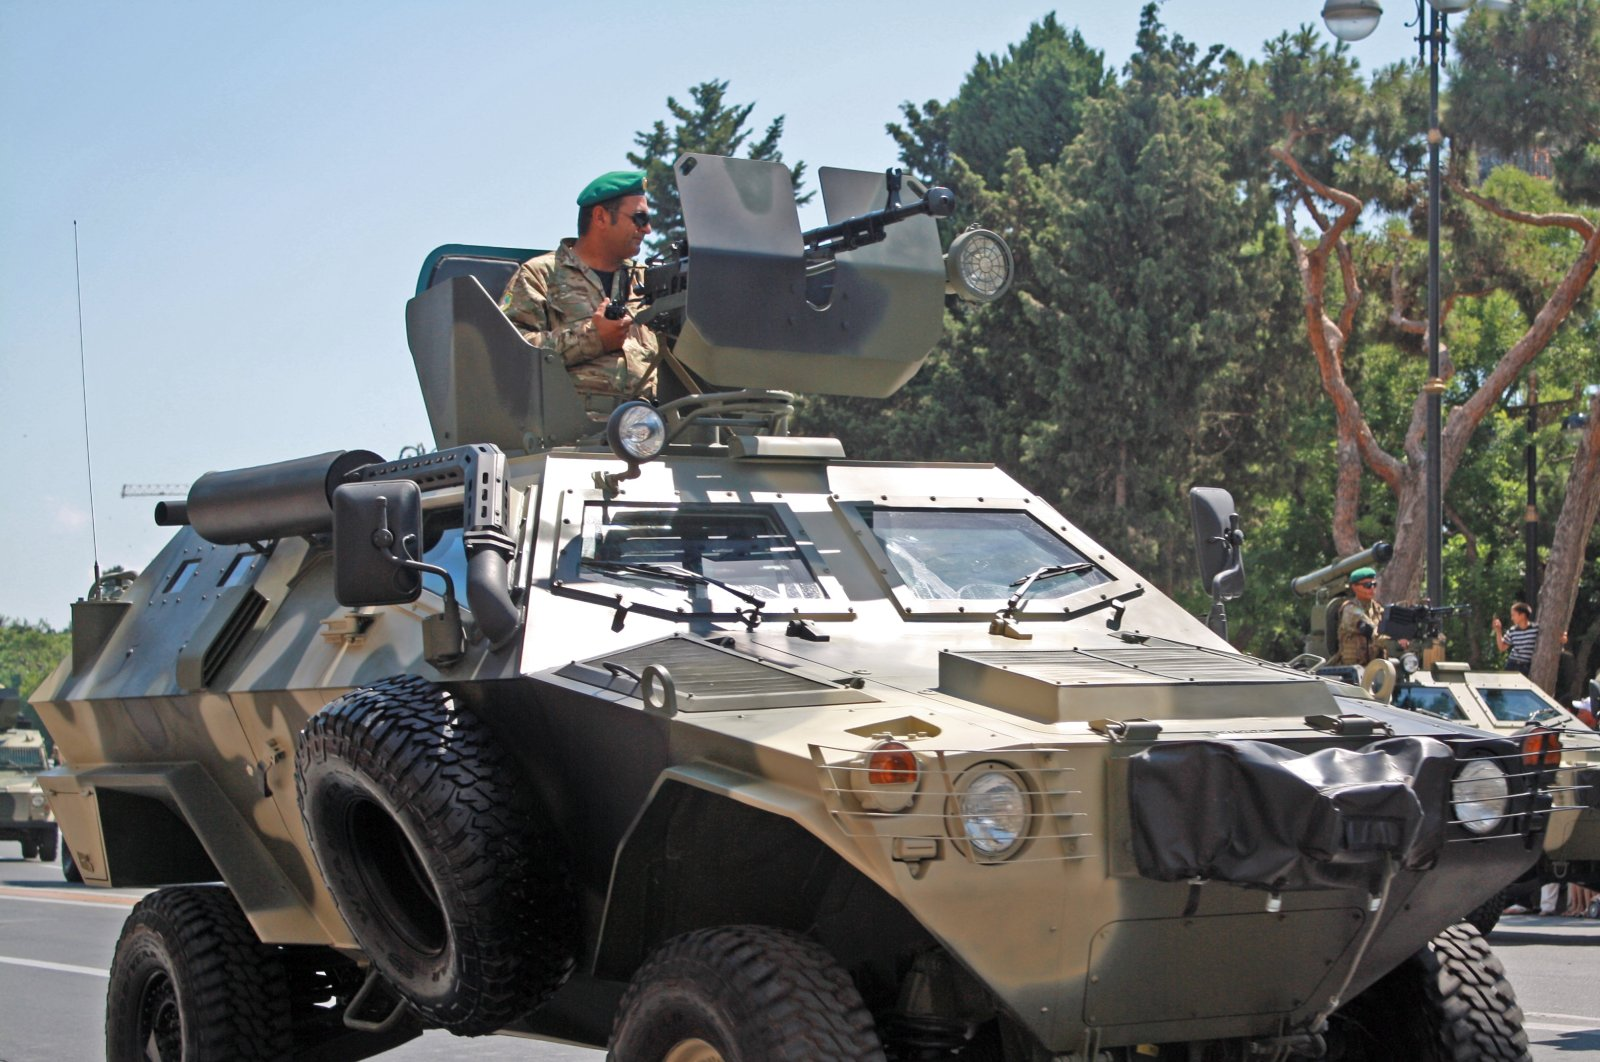 The Kobra armored tactical vehicle developed by Turkish firm Otokar seen in a military parade in the Azerbaijani capital Baku, June 26, 2011. (Photo by Wikipedia)